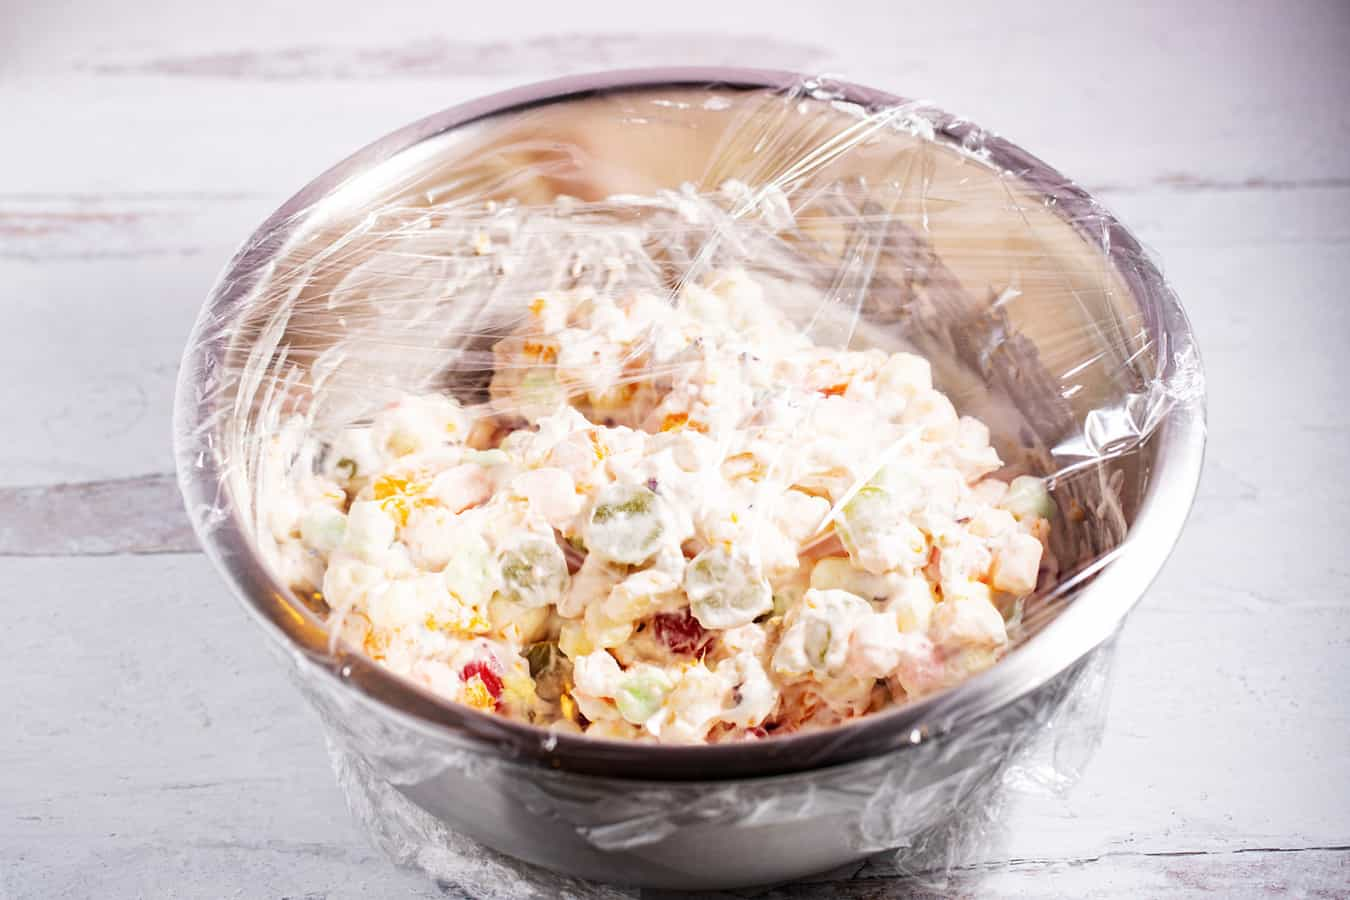 ambrosia salad covered in plastic wrap ready to go in the refrigerator